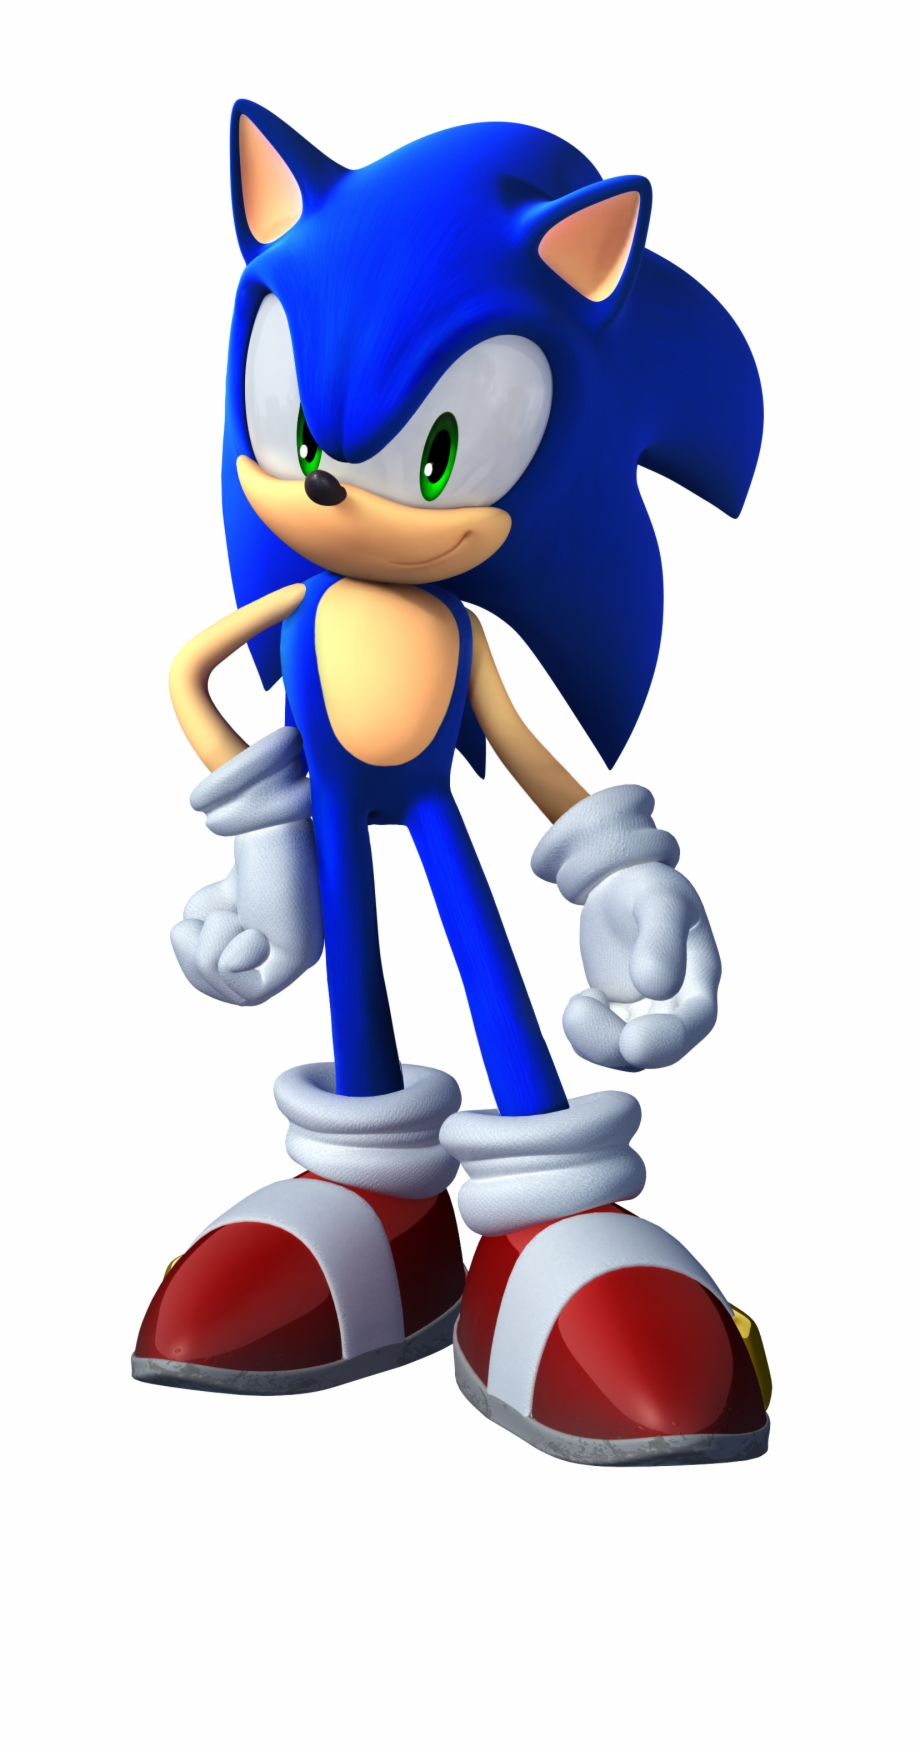 Sonic The Hedgehog Transparent Free Sonic The Hedgehog Transparent Png Transparent Images 42017 Pngio